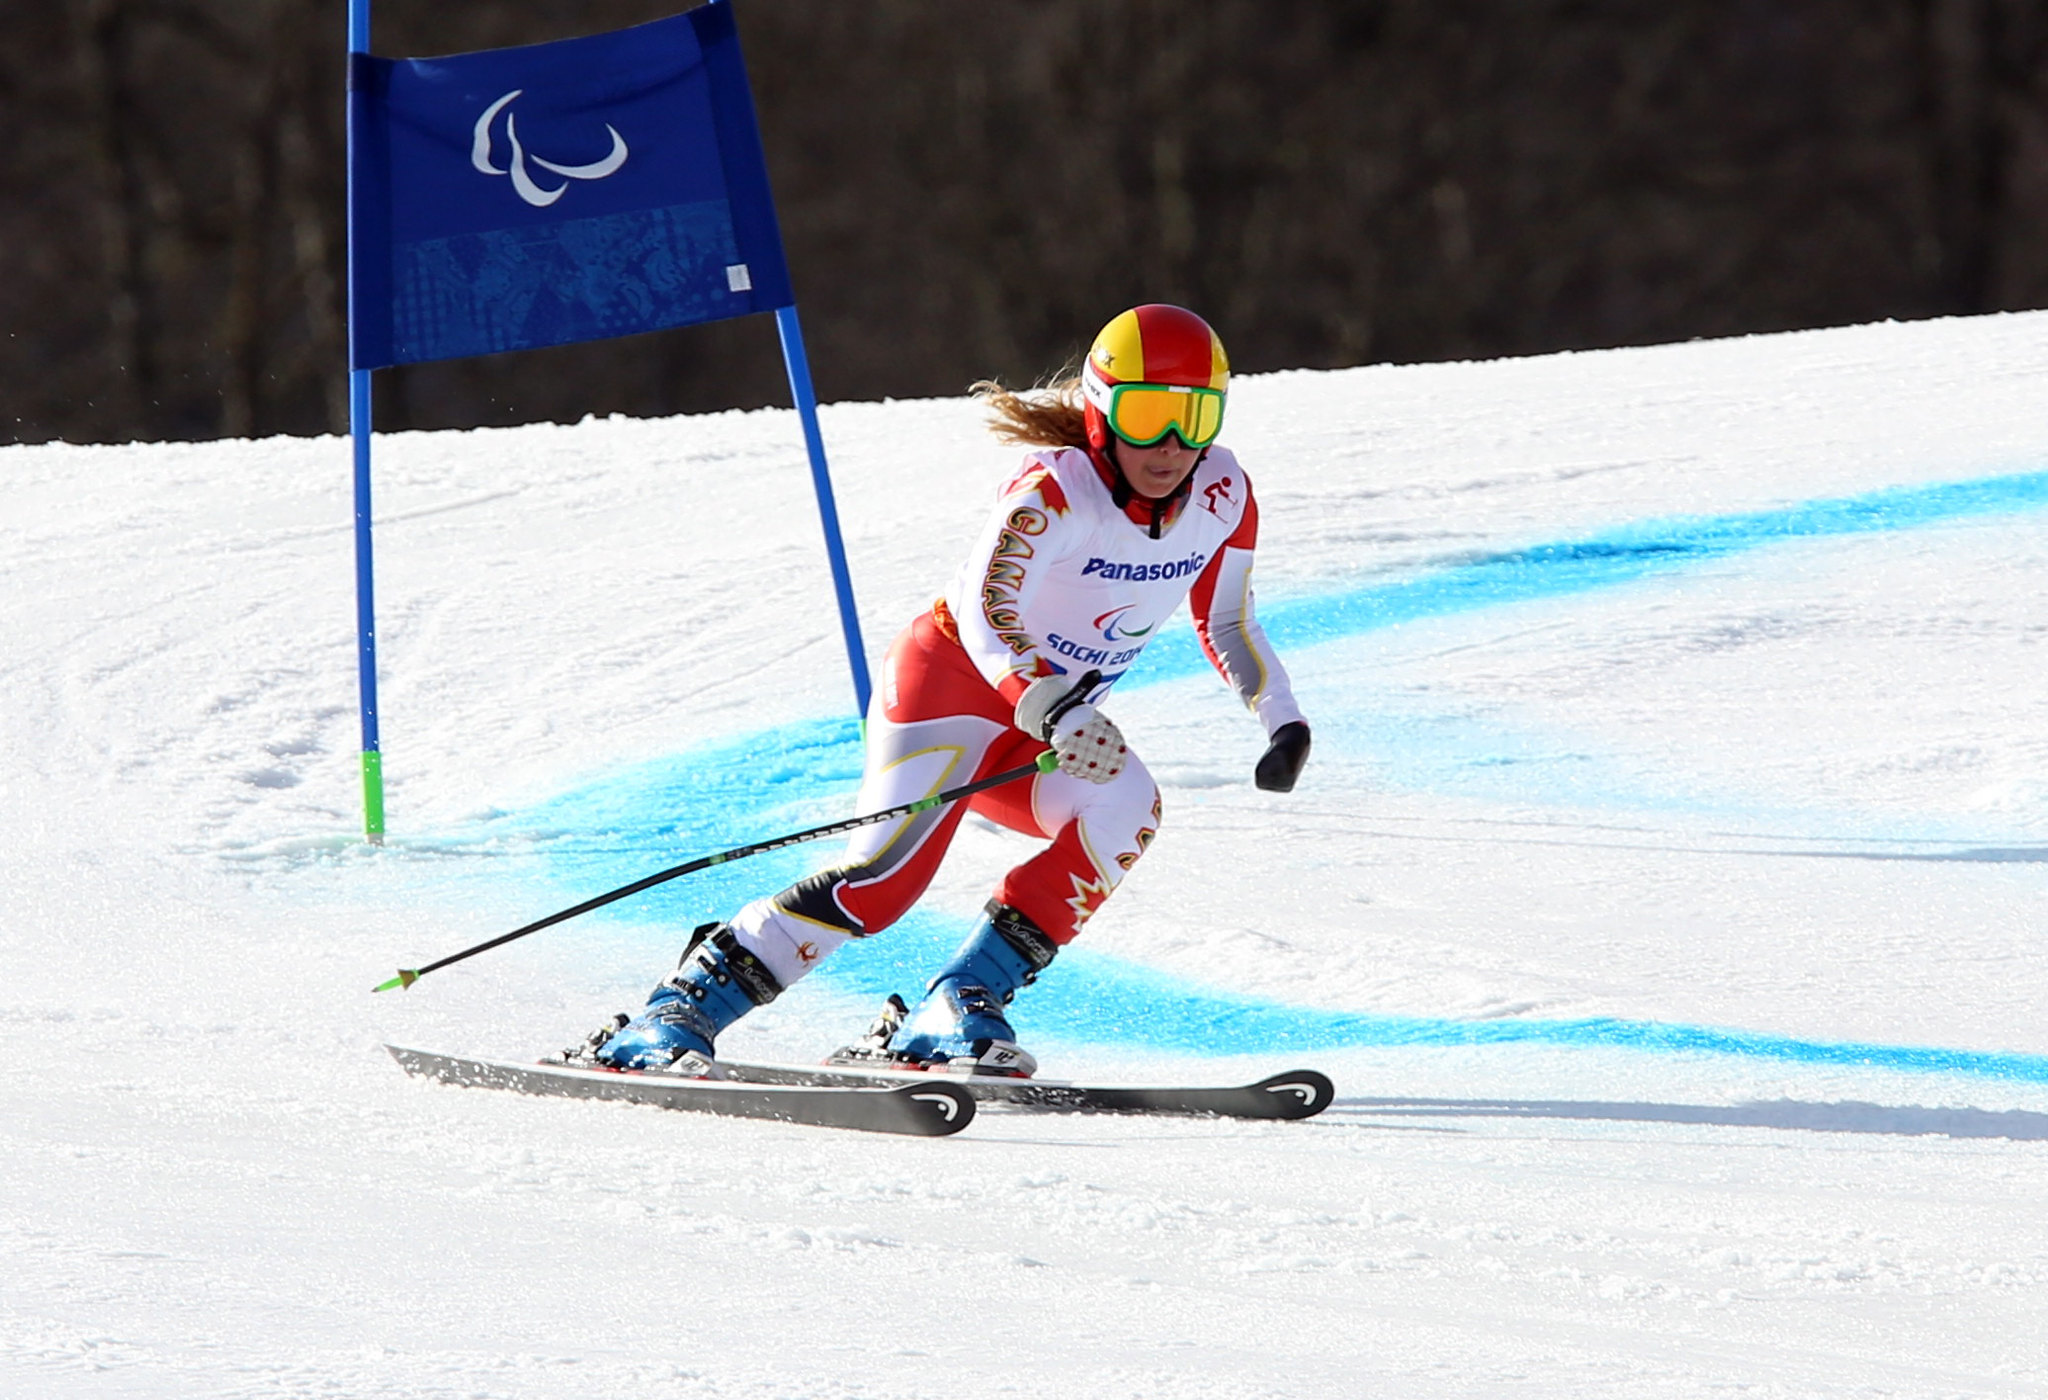 Alex Starker in action during giant slalom at the Paralympic Winter Games in Sochi, RUS